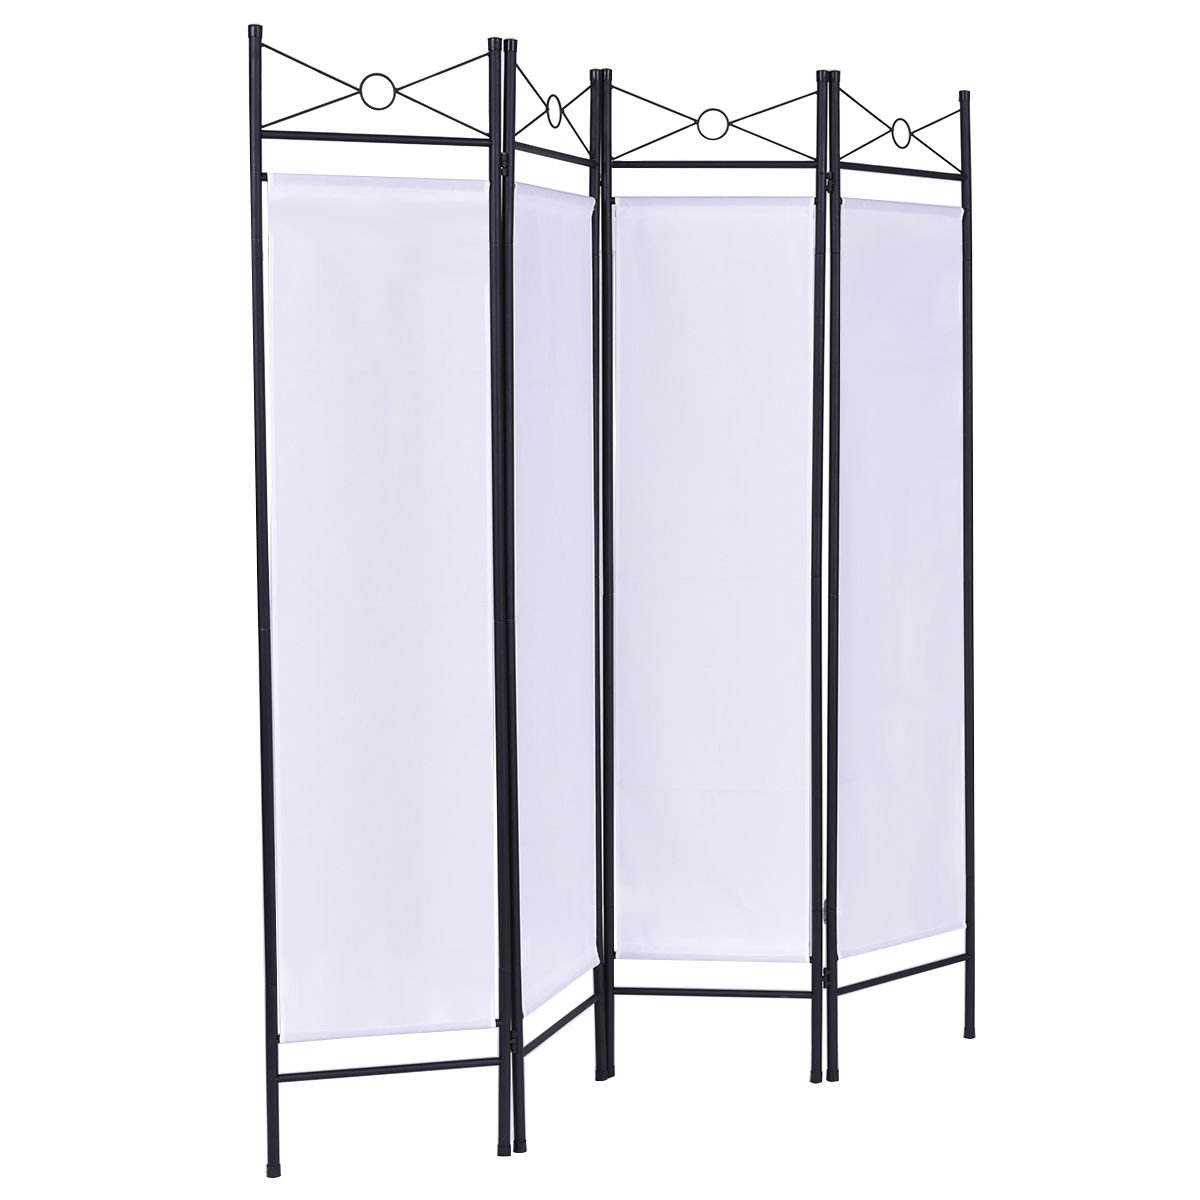 White 4 Panel Room Divider Privacy Folding Screen Home Office Fabric Metal Frame + FREE E - Book by White Bear & Brown Rabbit (Image #1)